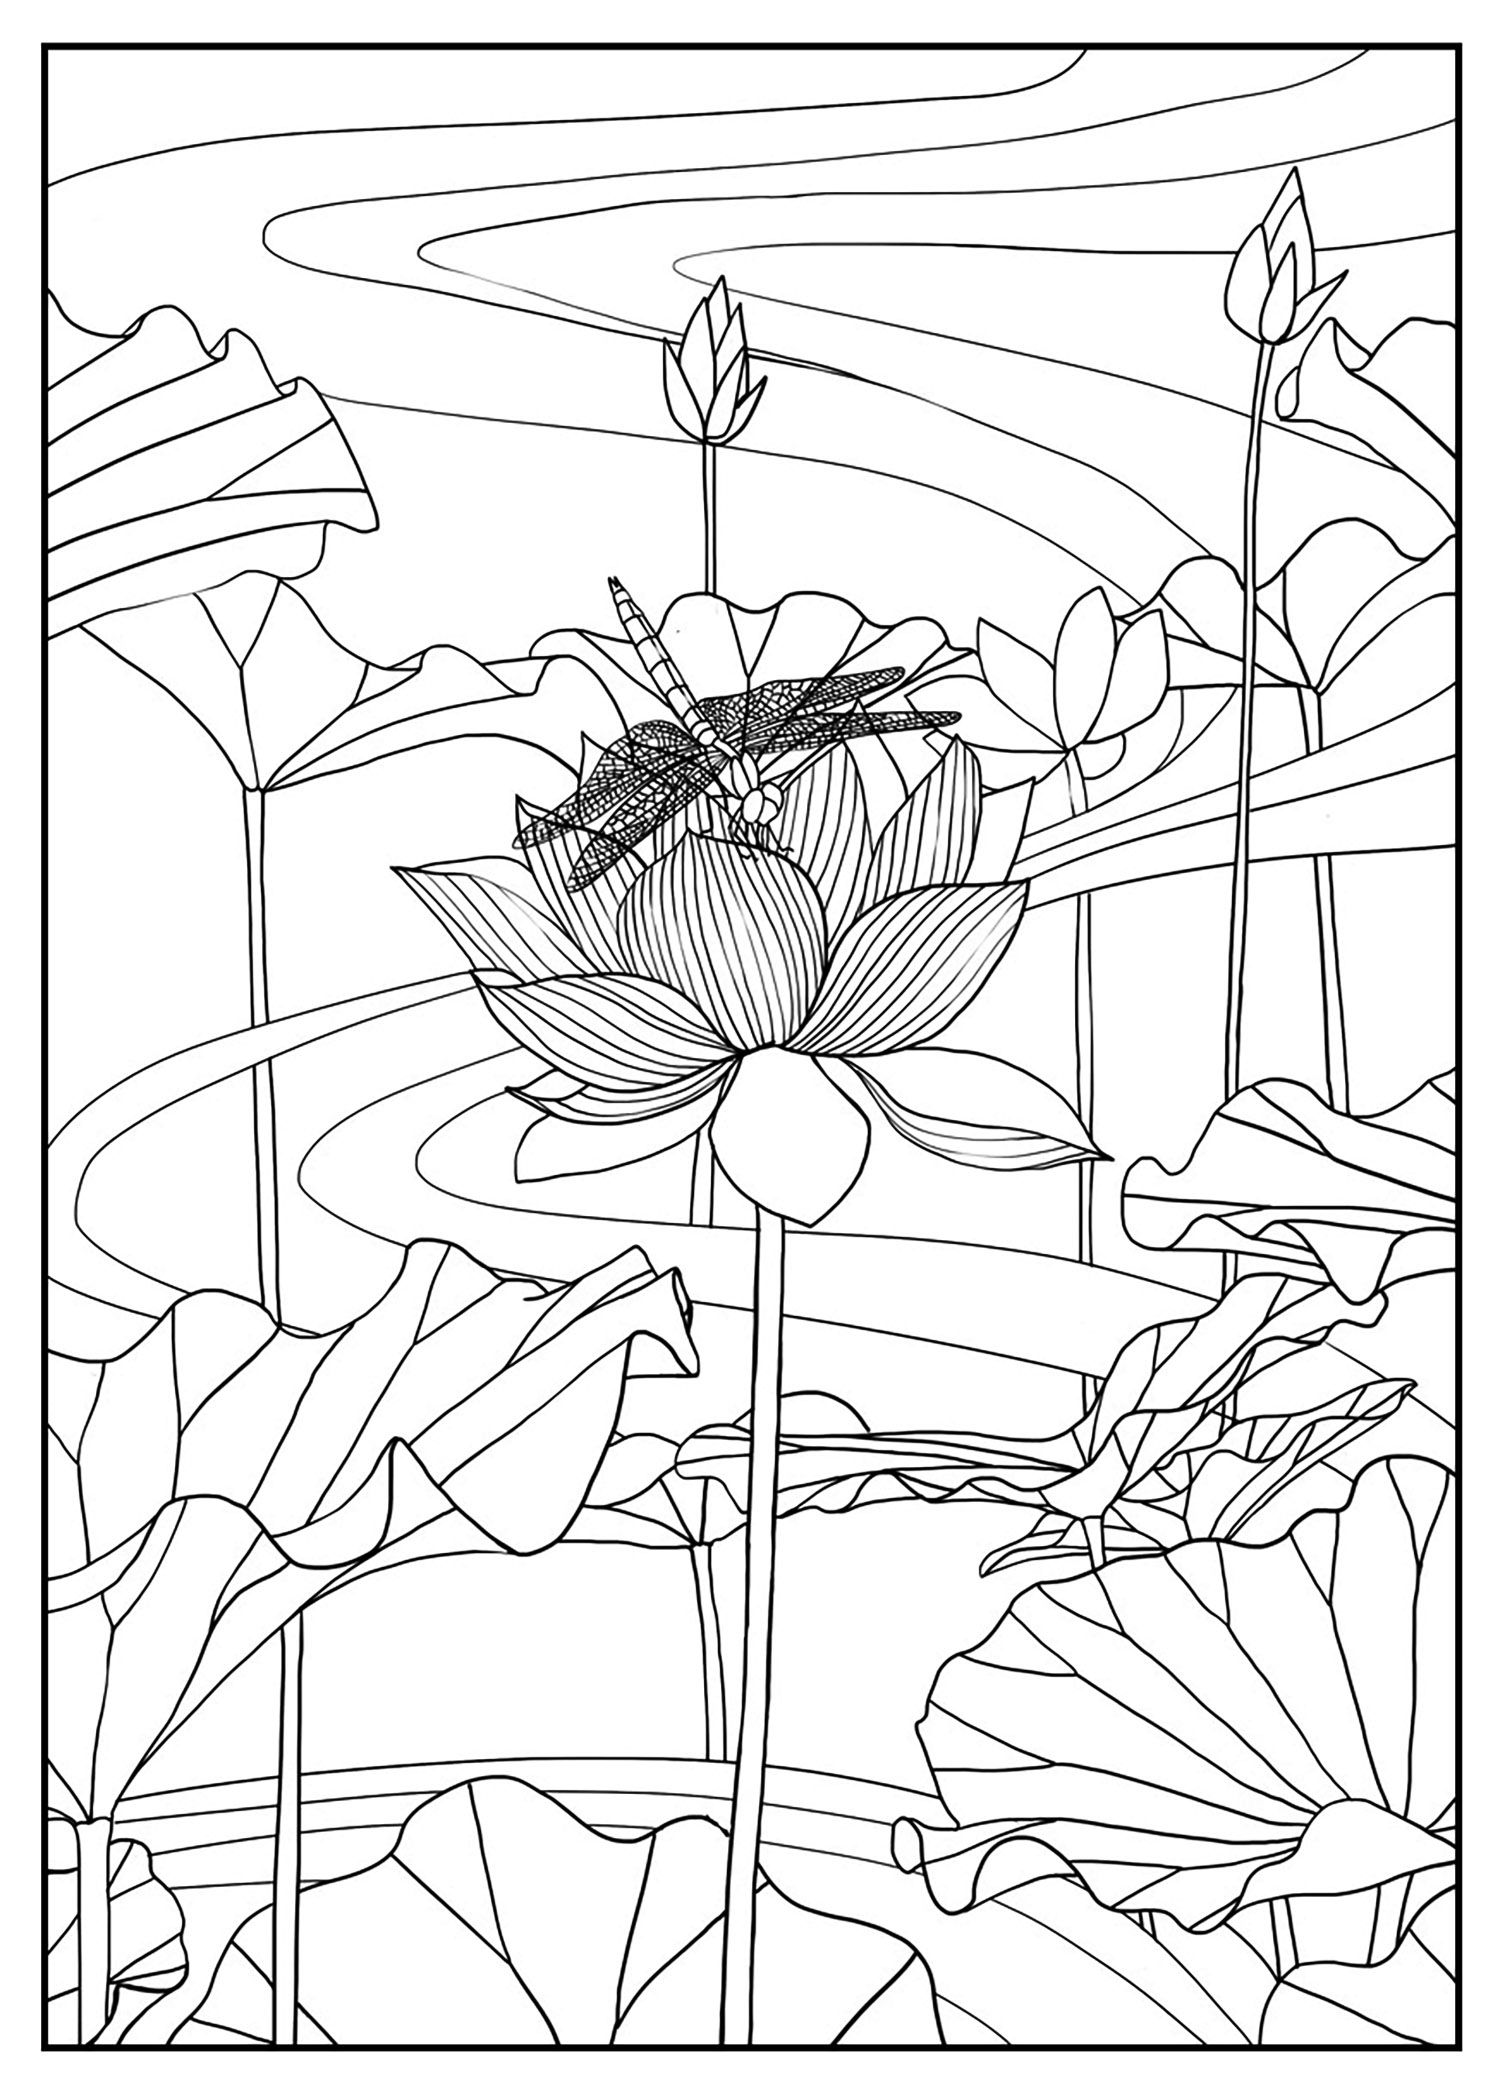 Coloring pages for donna flor - Free Coloring Page Coloring Adult Lotus By Mizu Lotus Exclusive